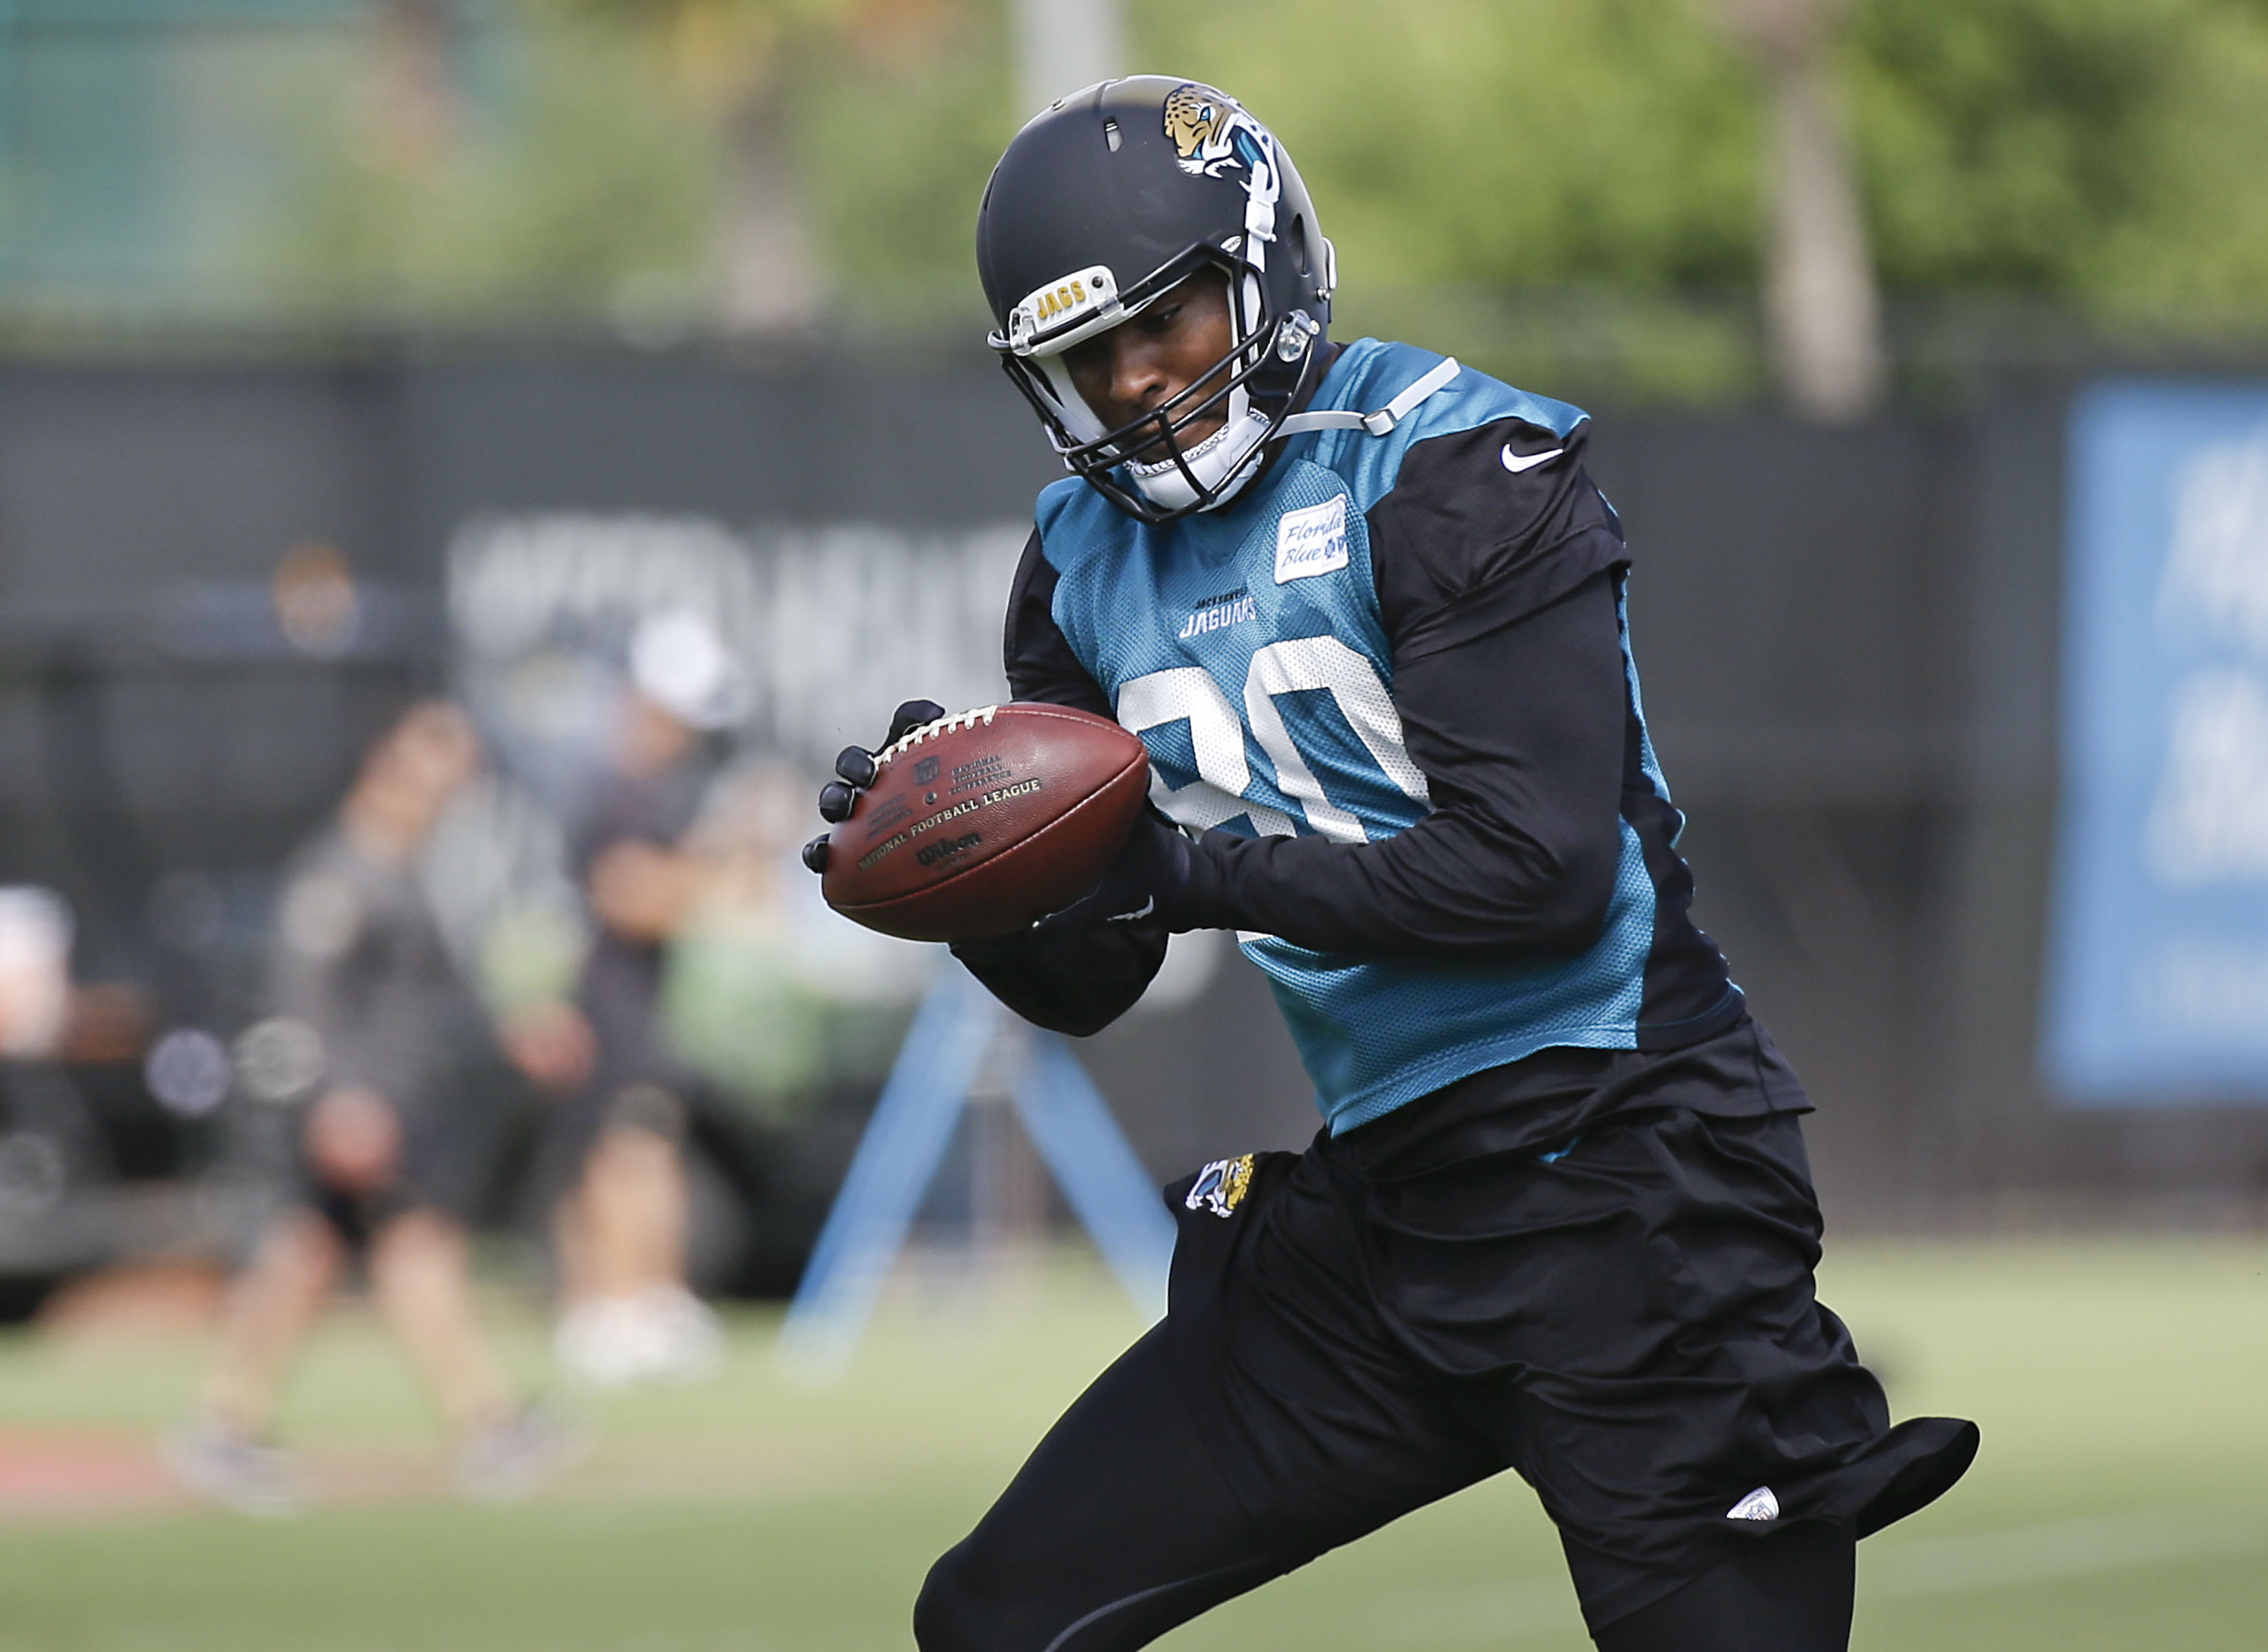 FILE - In this Wednesday, May 27, 2015, file photo, Jacksonville Jaguars receiver Julius Thomas catches a pass during NFL football organized training activities in Jacksonville, Fla. Jacksonville was one of the most active teams in free agency, landing ti